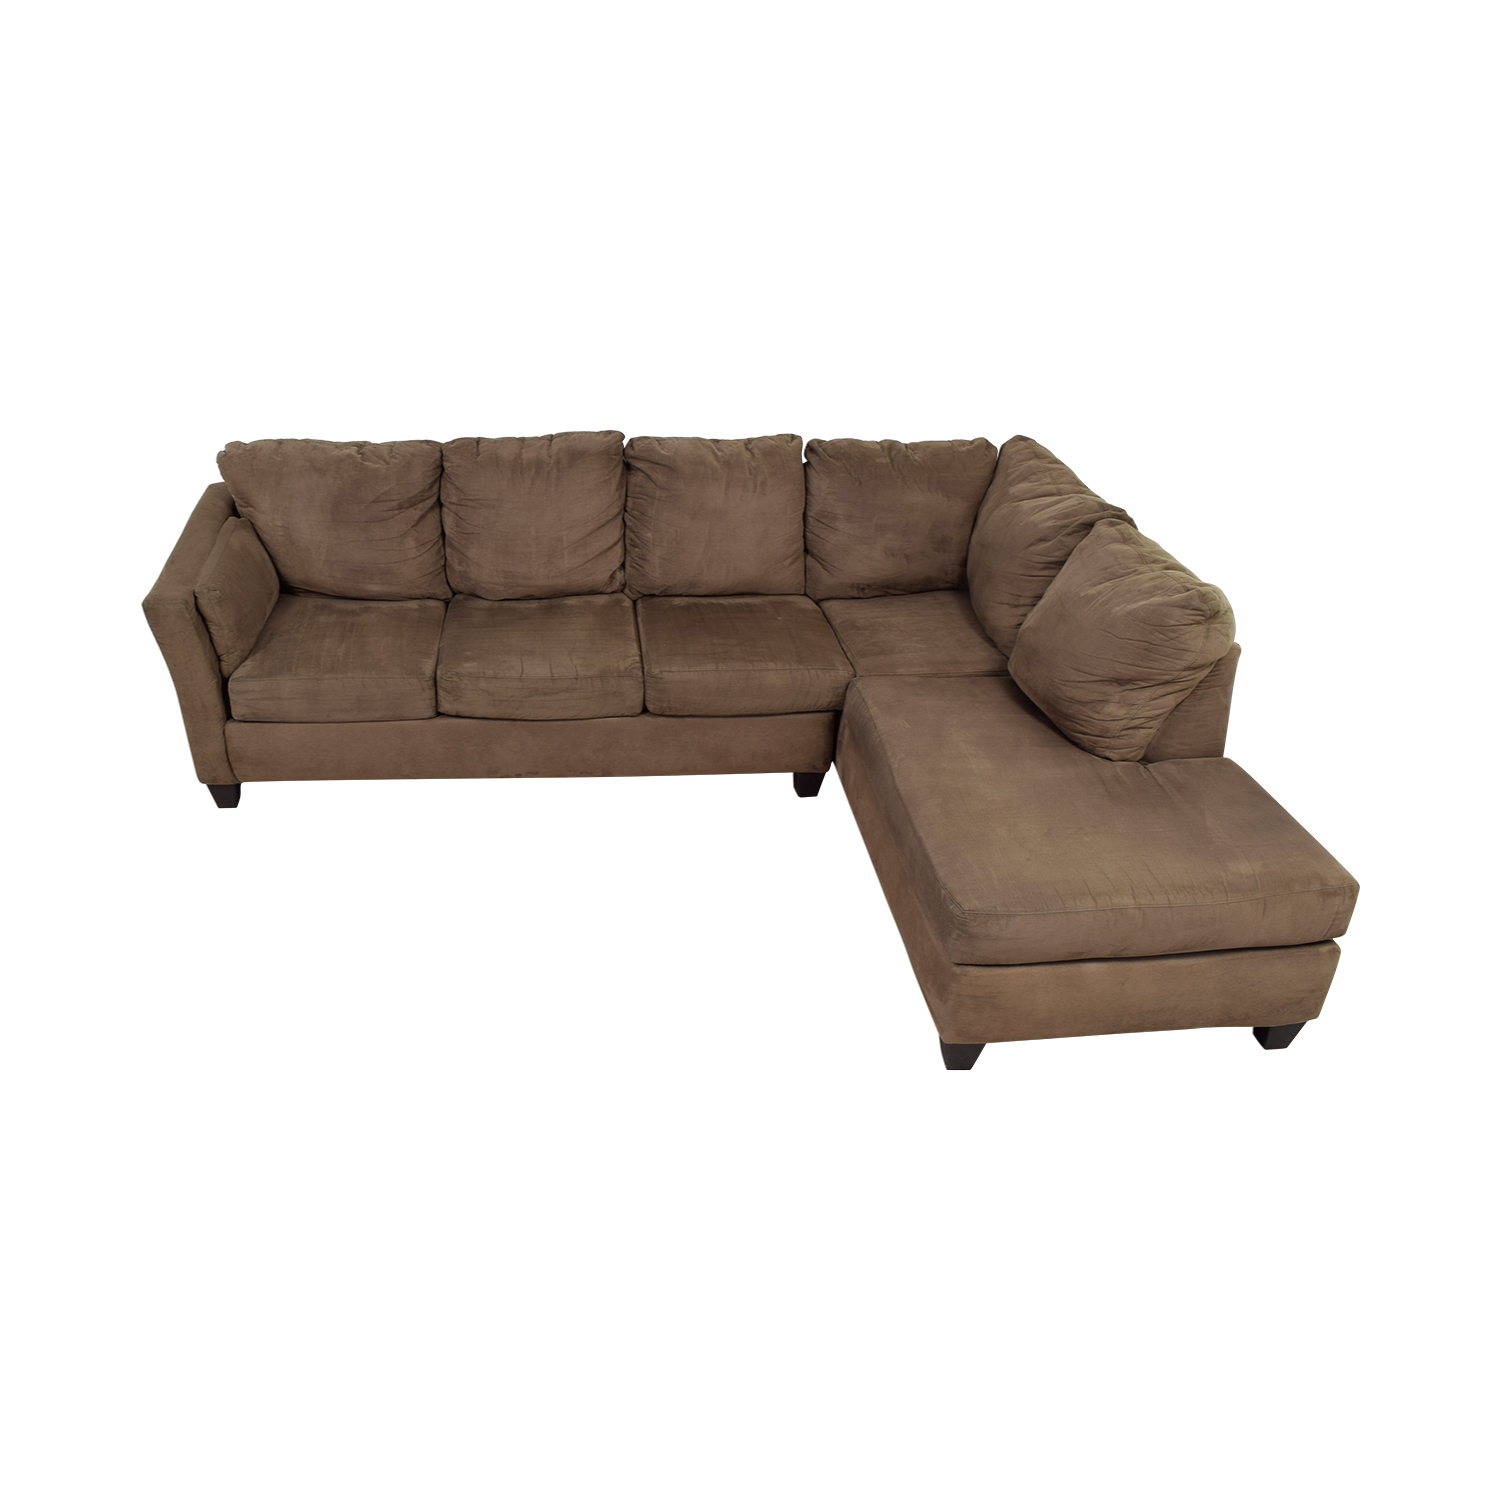 Bob's Furniture Bob's Furniture Libre II Brown L-Shaped Chaise Sectional nyc